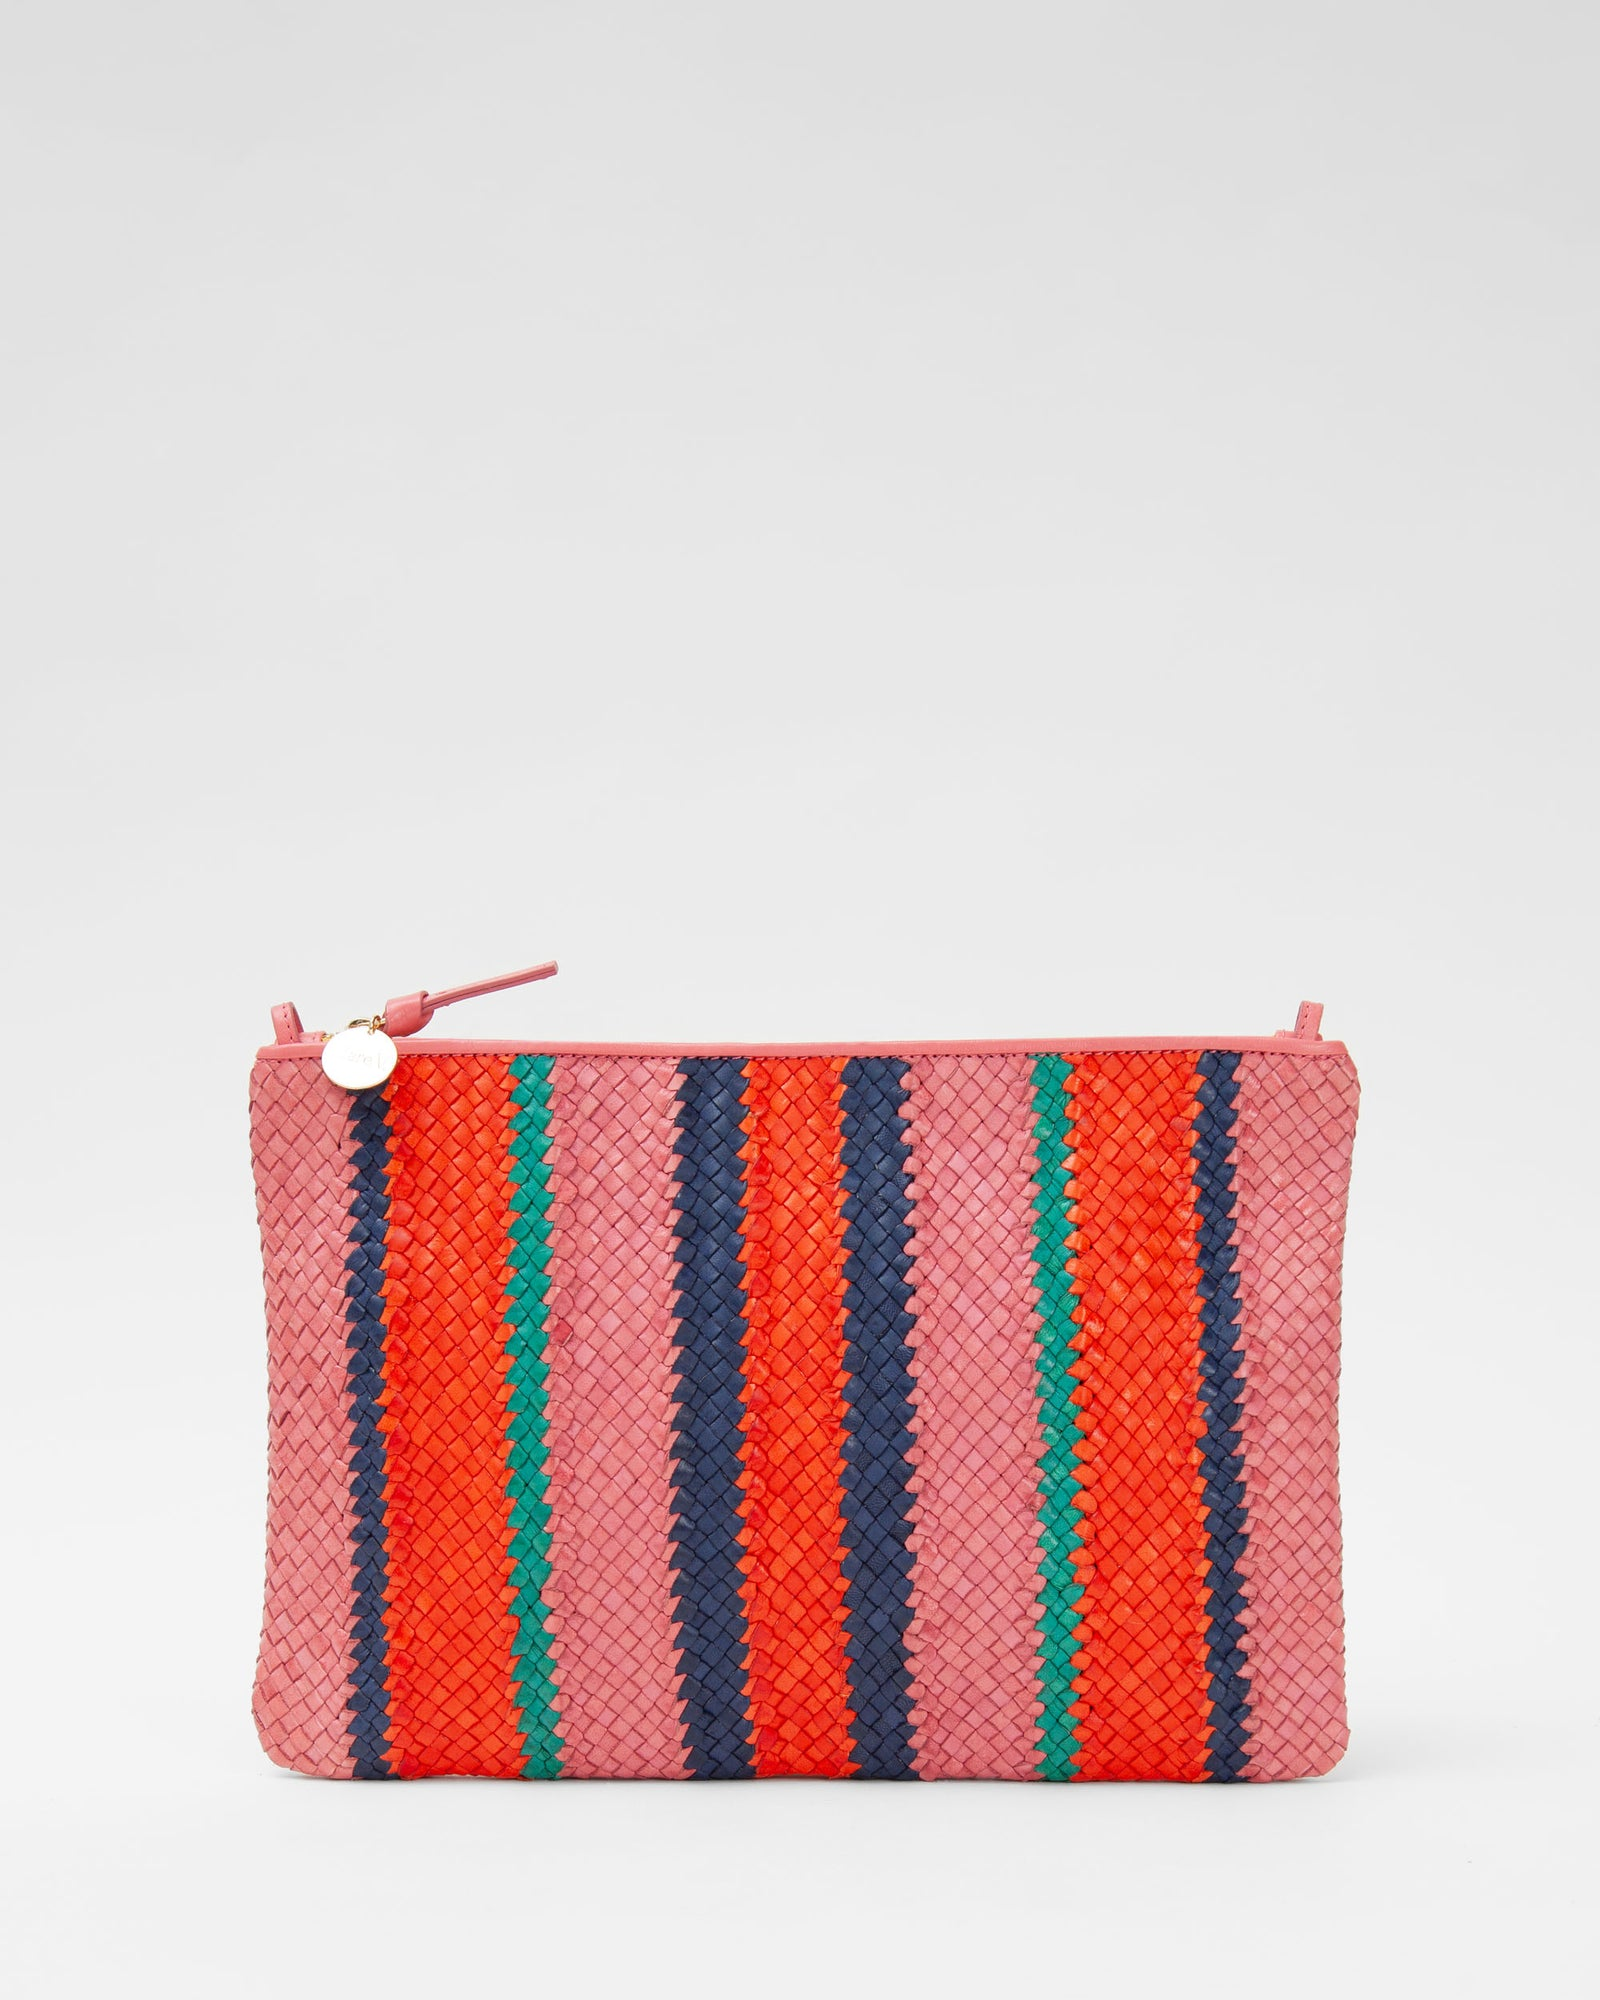 Petal with Poppy, Navy & Mint Opal Woven Stripes Flat Clutch w/ Tabs - Front